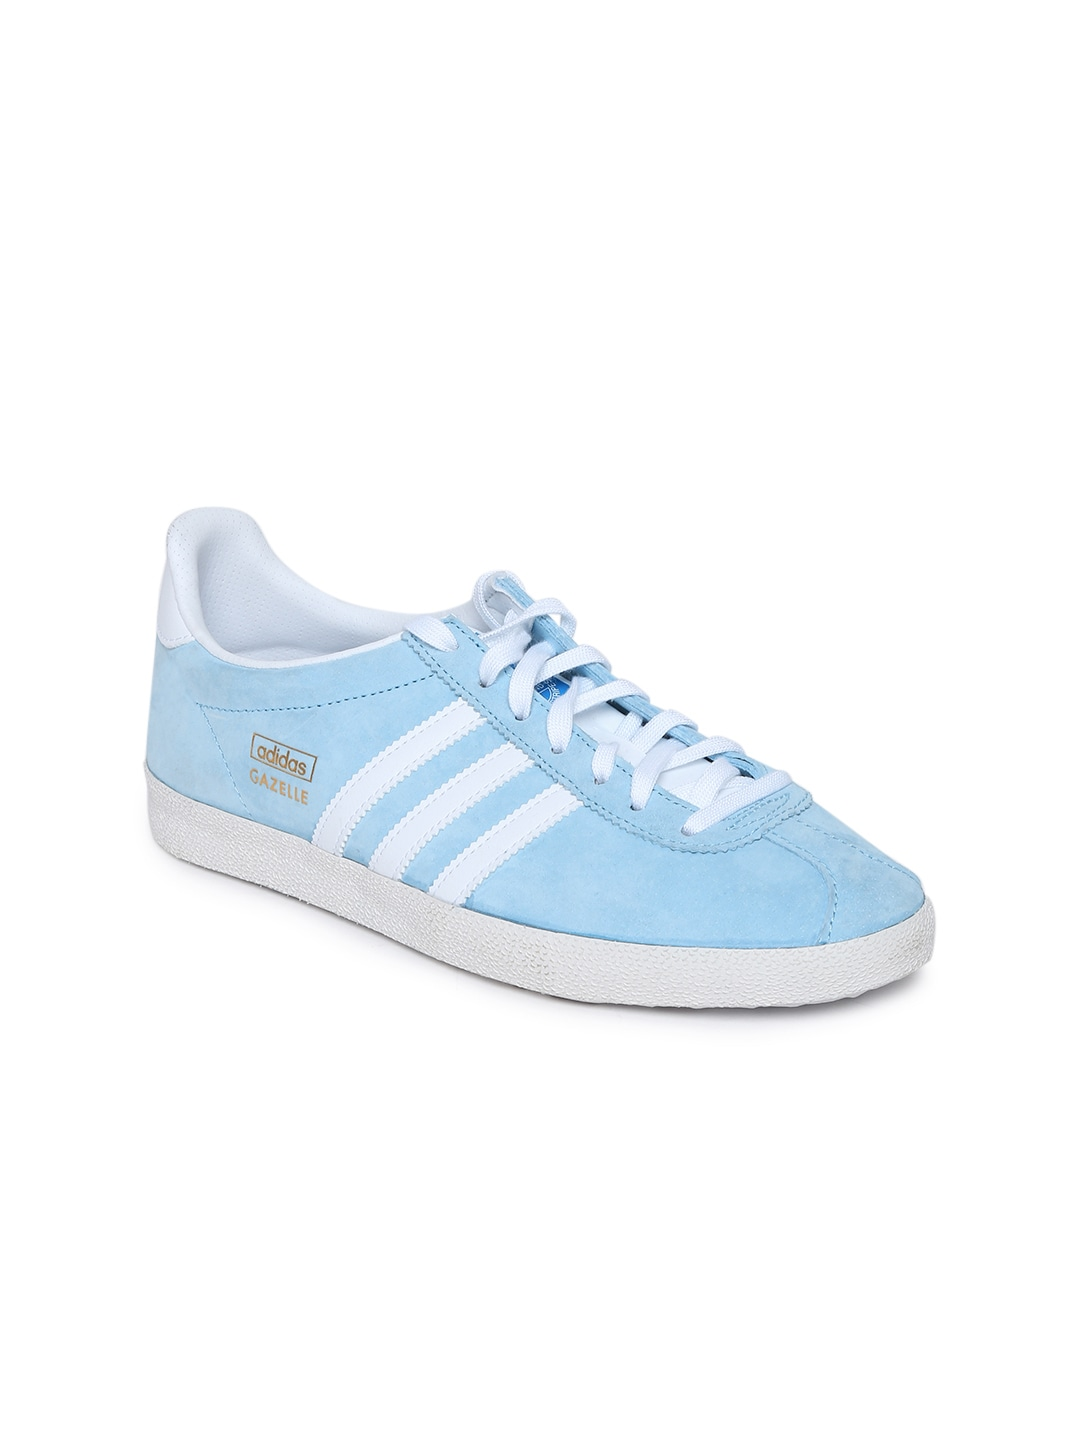 Adidas Gazelle Light Blue